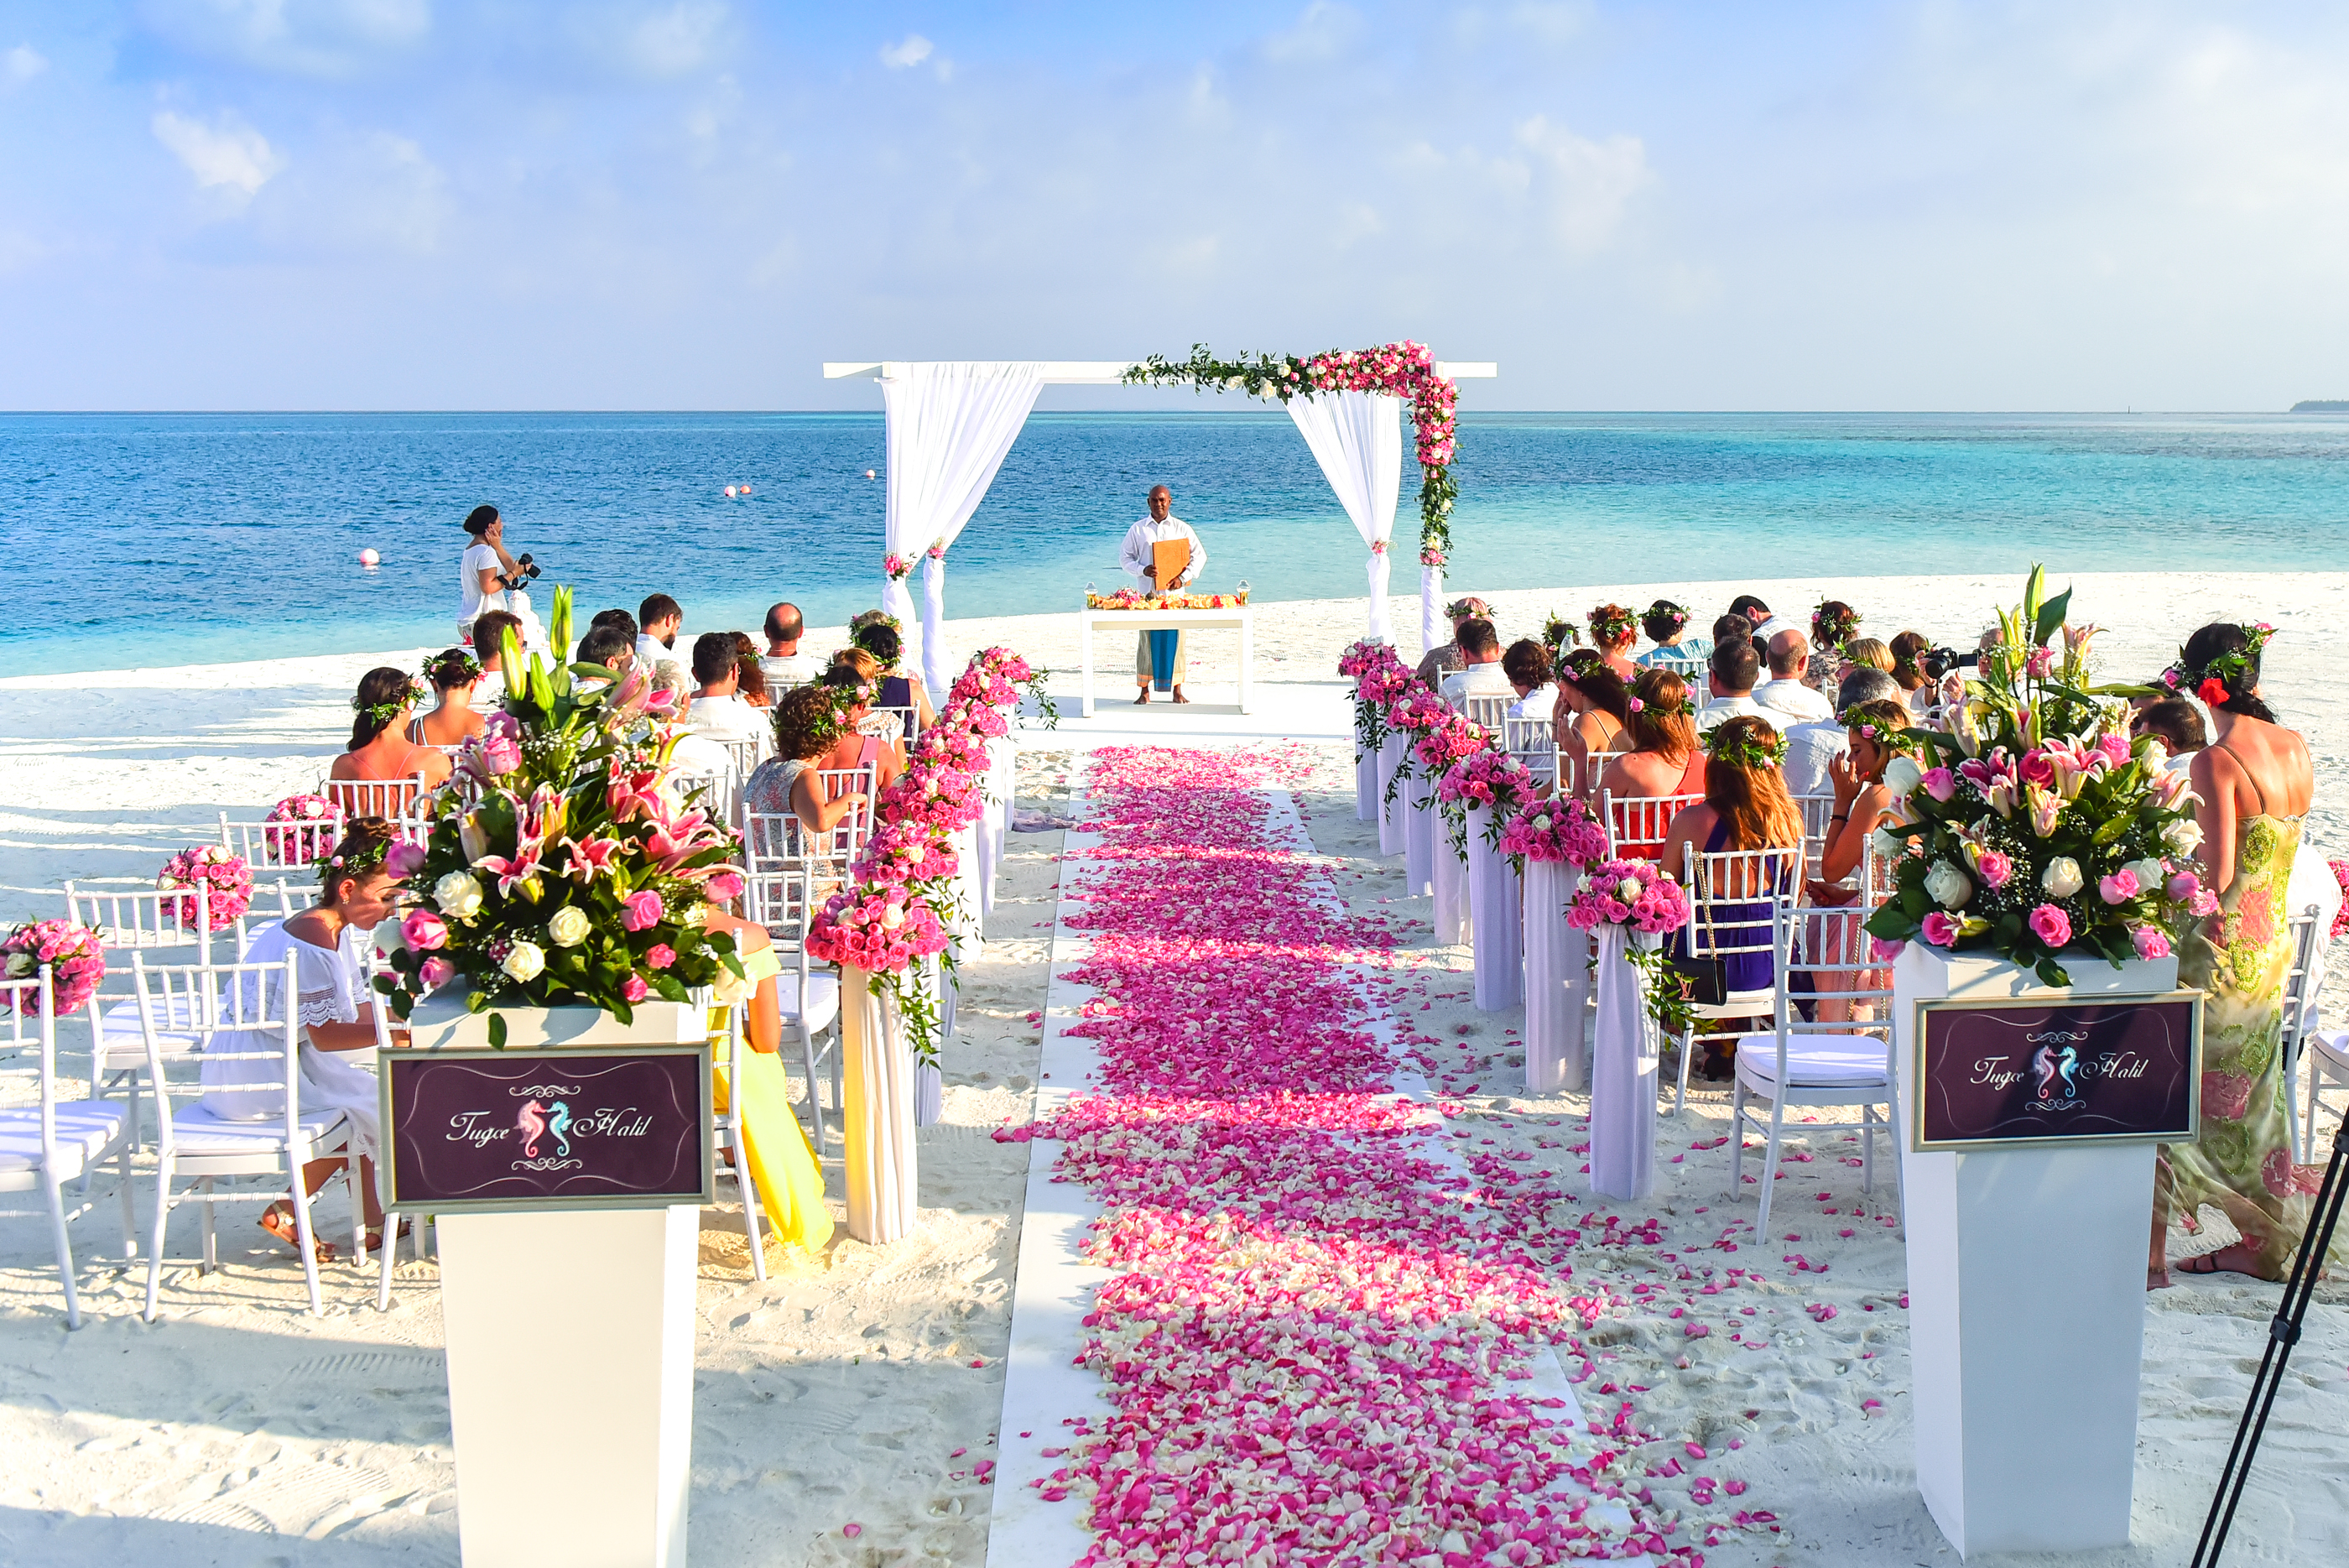 Beach wedding ceremony during daytime free stock photo free download junglespirit Image collections